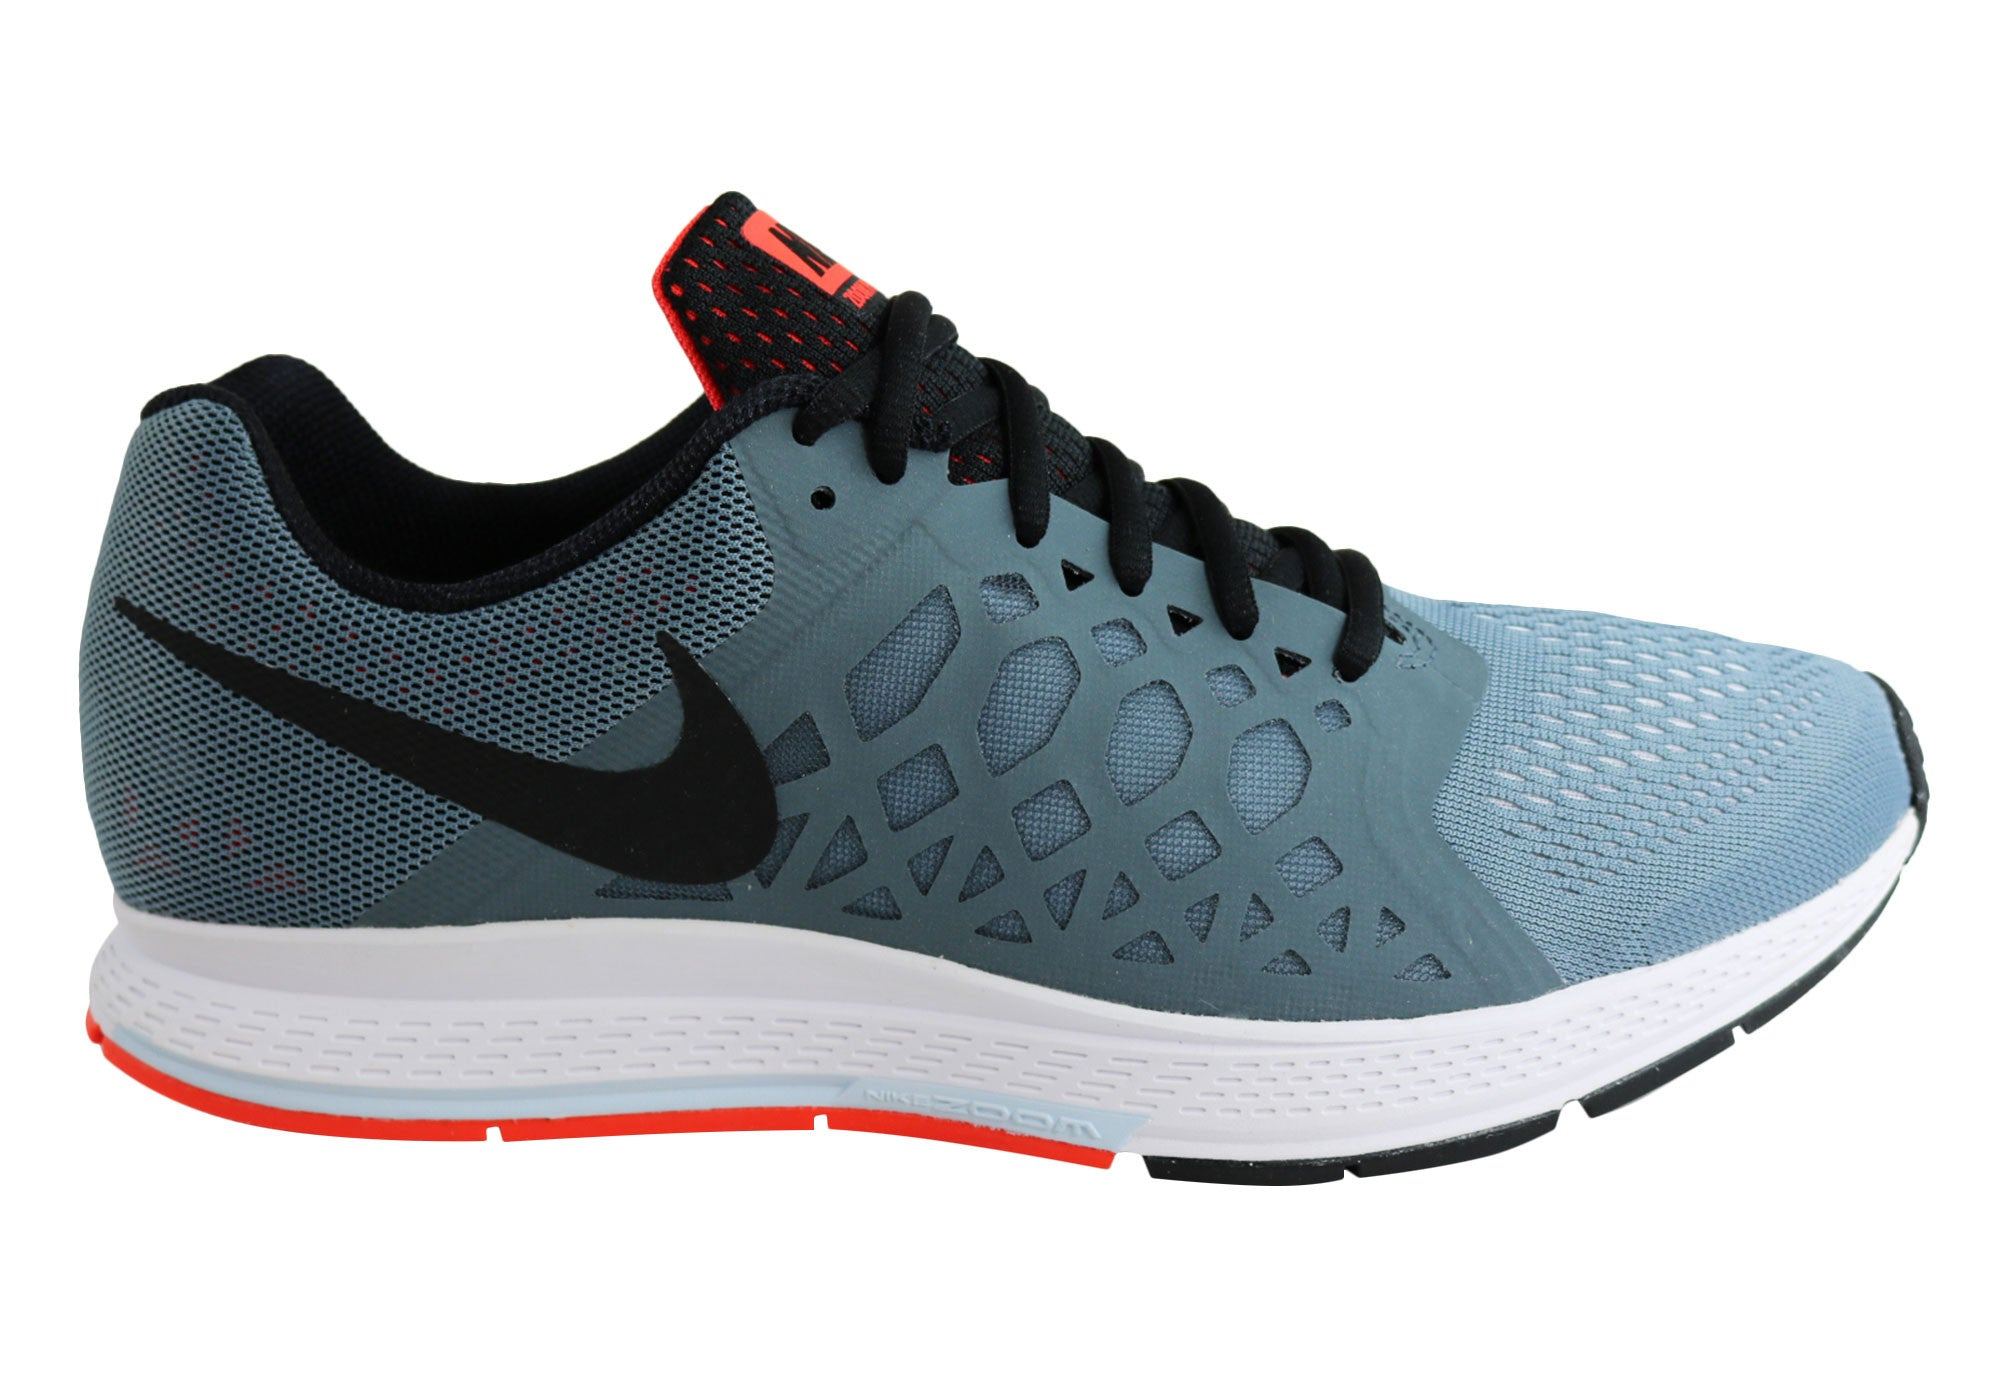 promo code ca9b0 9bf95 ... discount new nike air zoom pegasus 31 mens cushioned running shoes  b6095 fb1d2